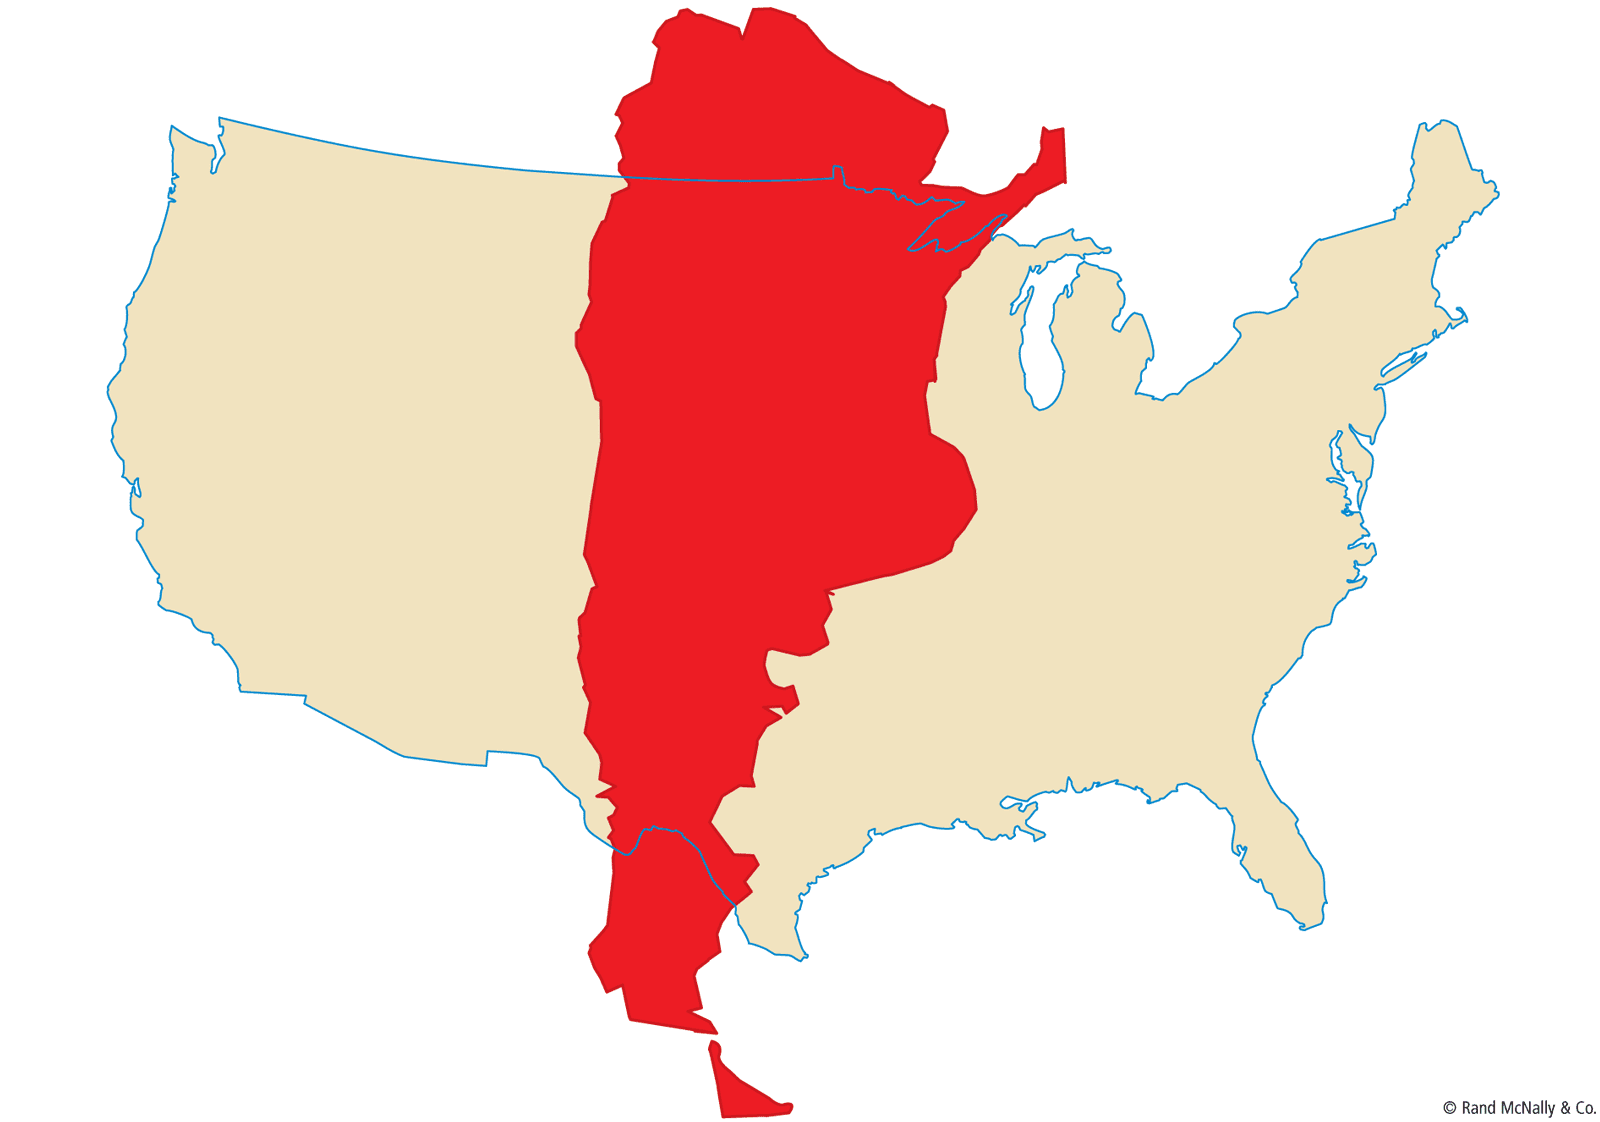 how big is argentina compared to the us